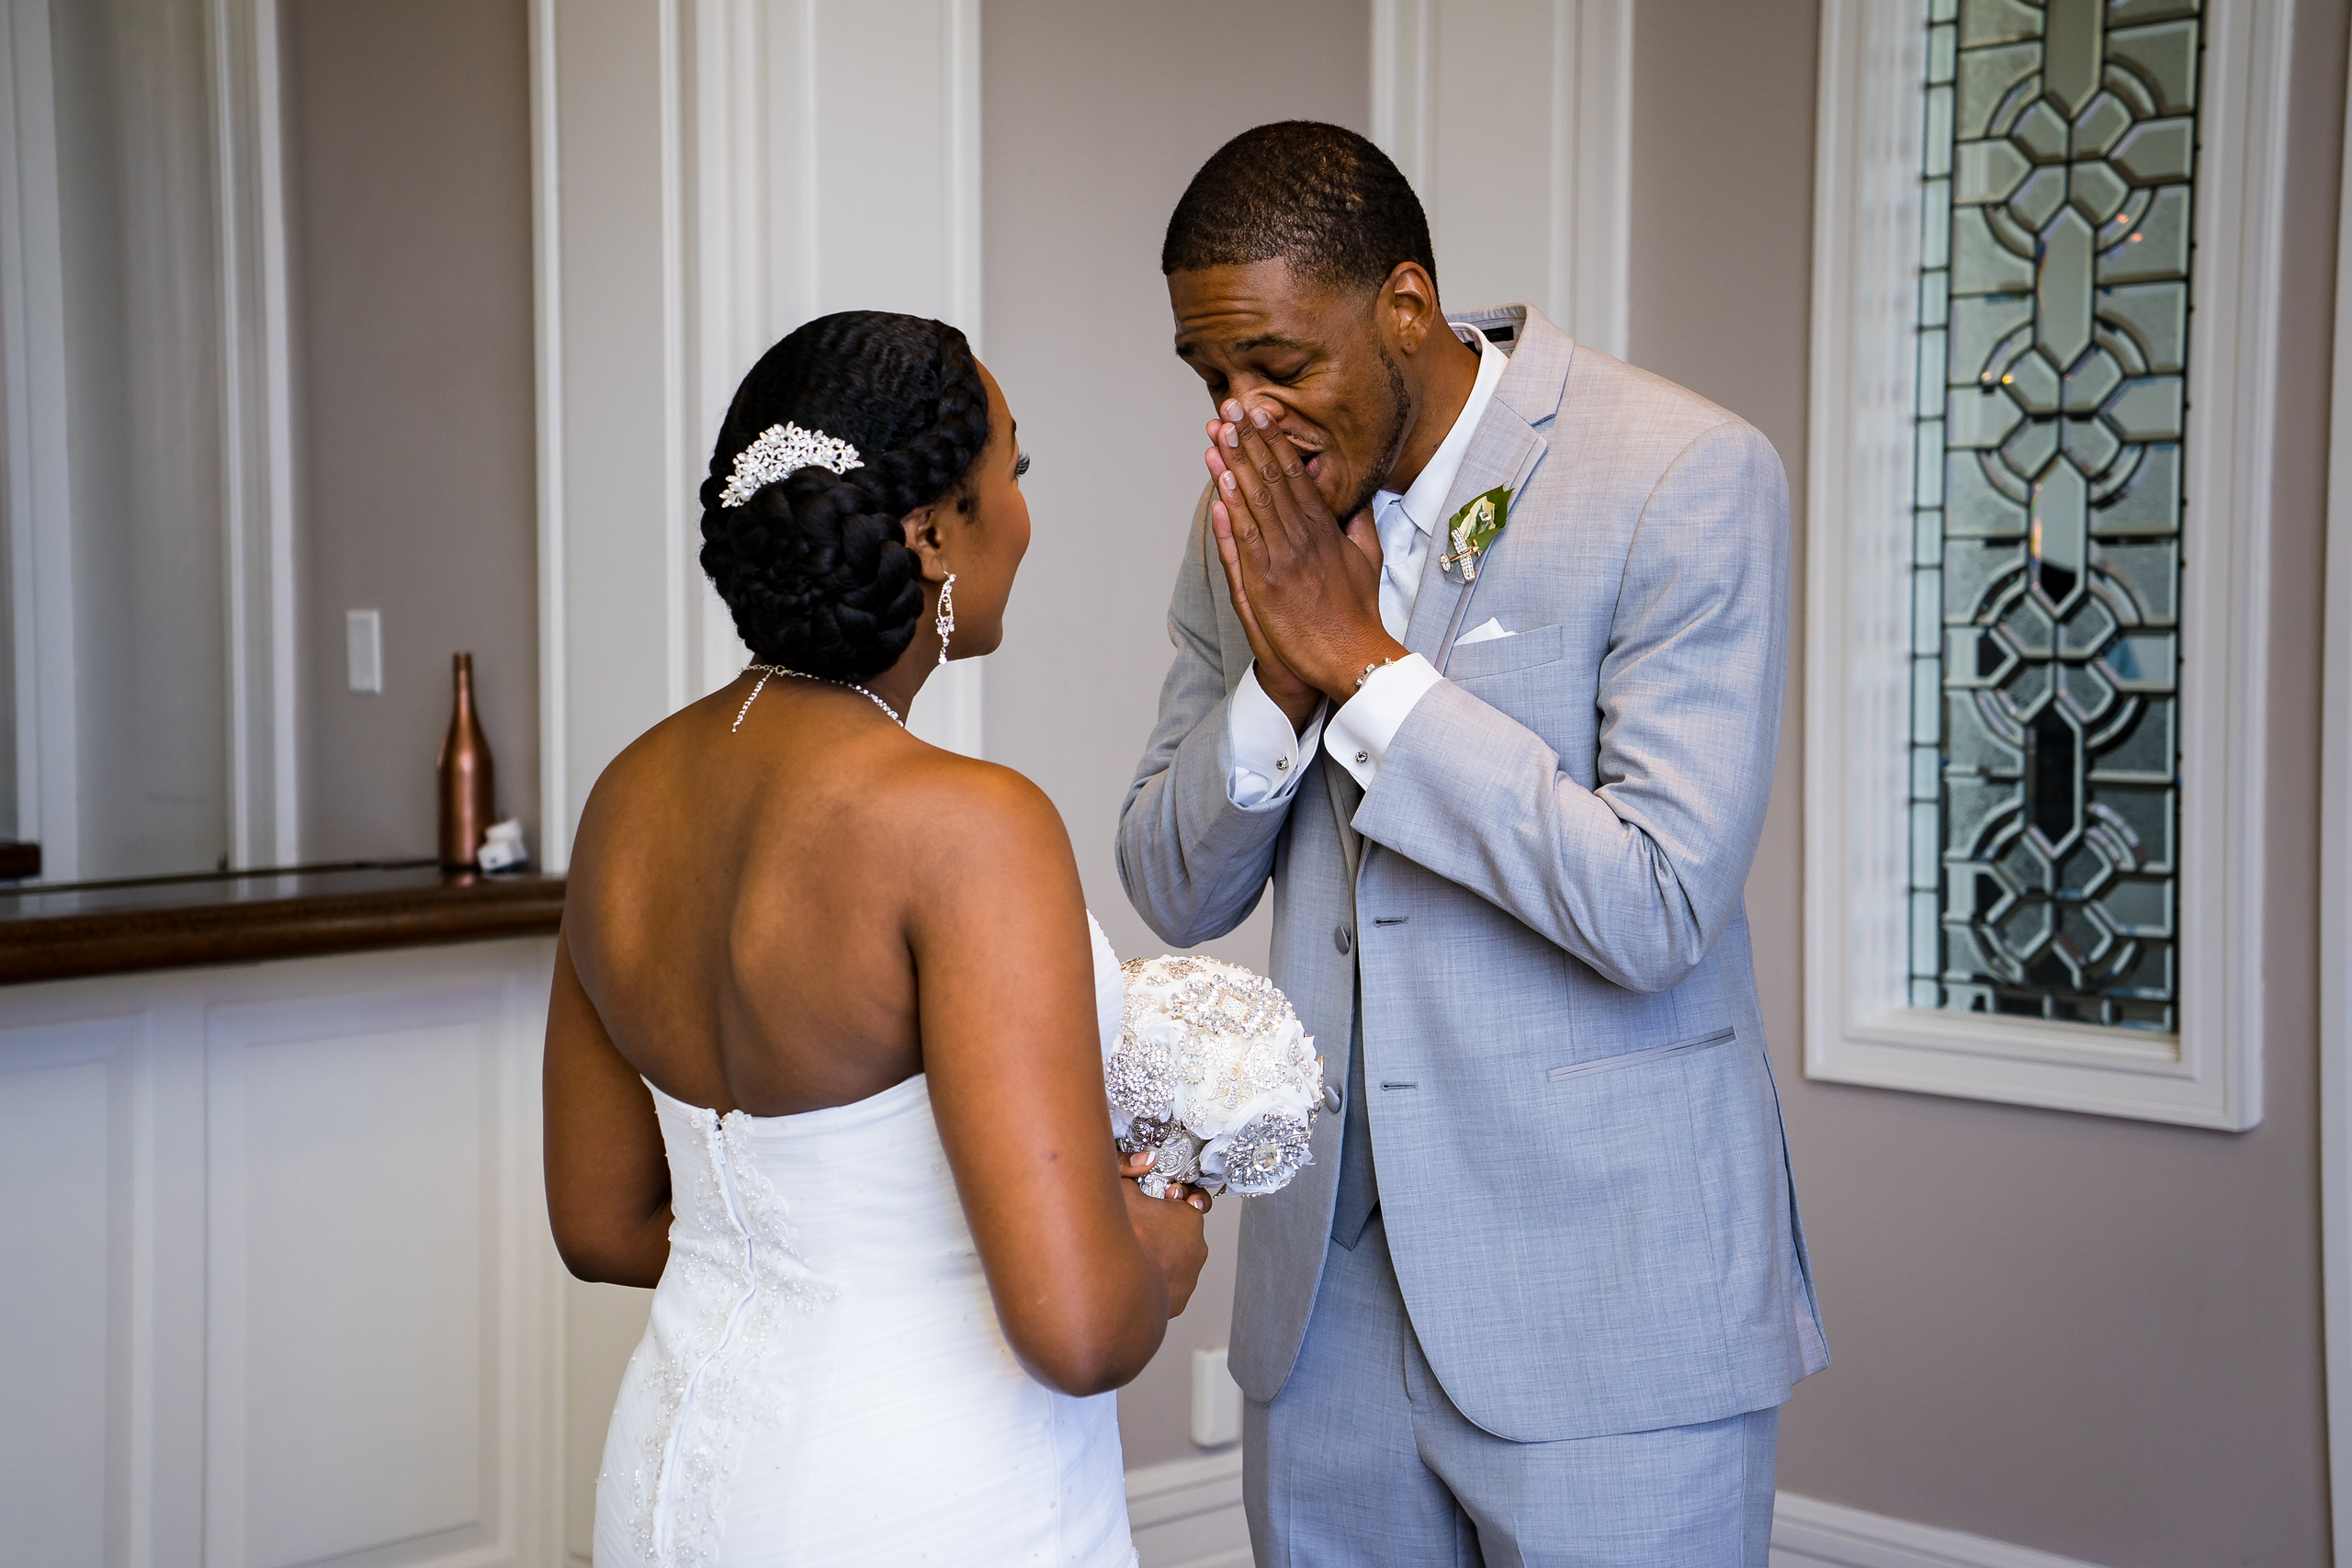 Groom wearing a sharkskin grey suit looking stunned as he sees his bride in her wedding dress for the first time